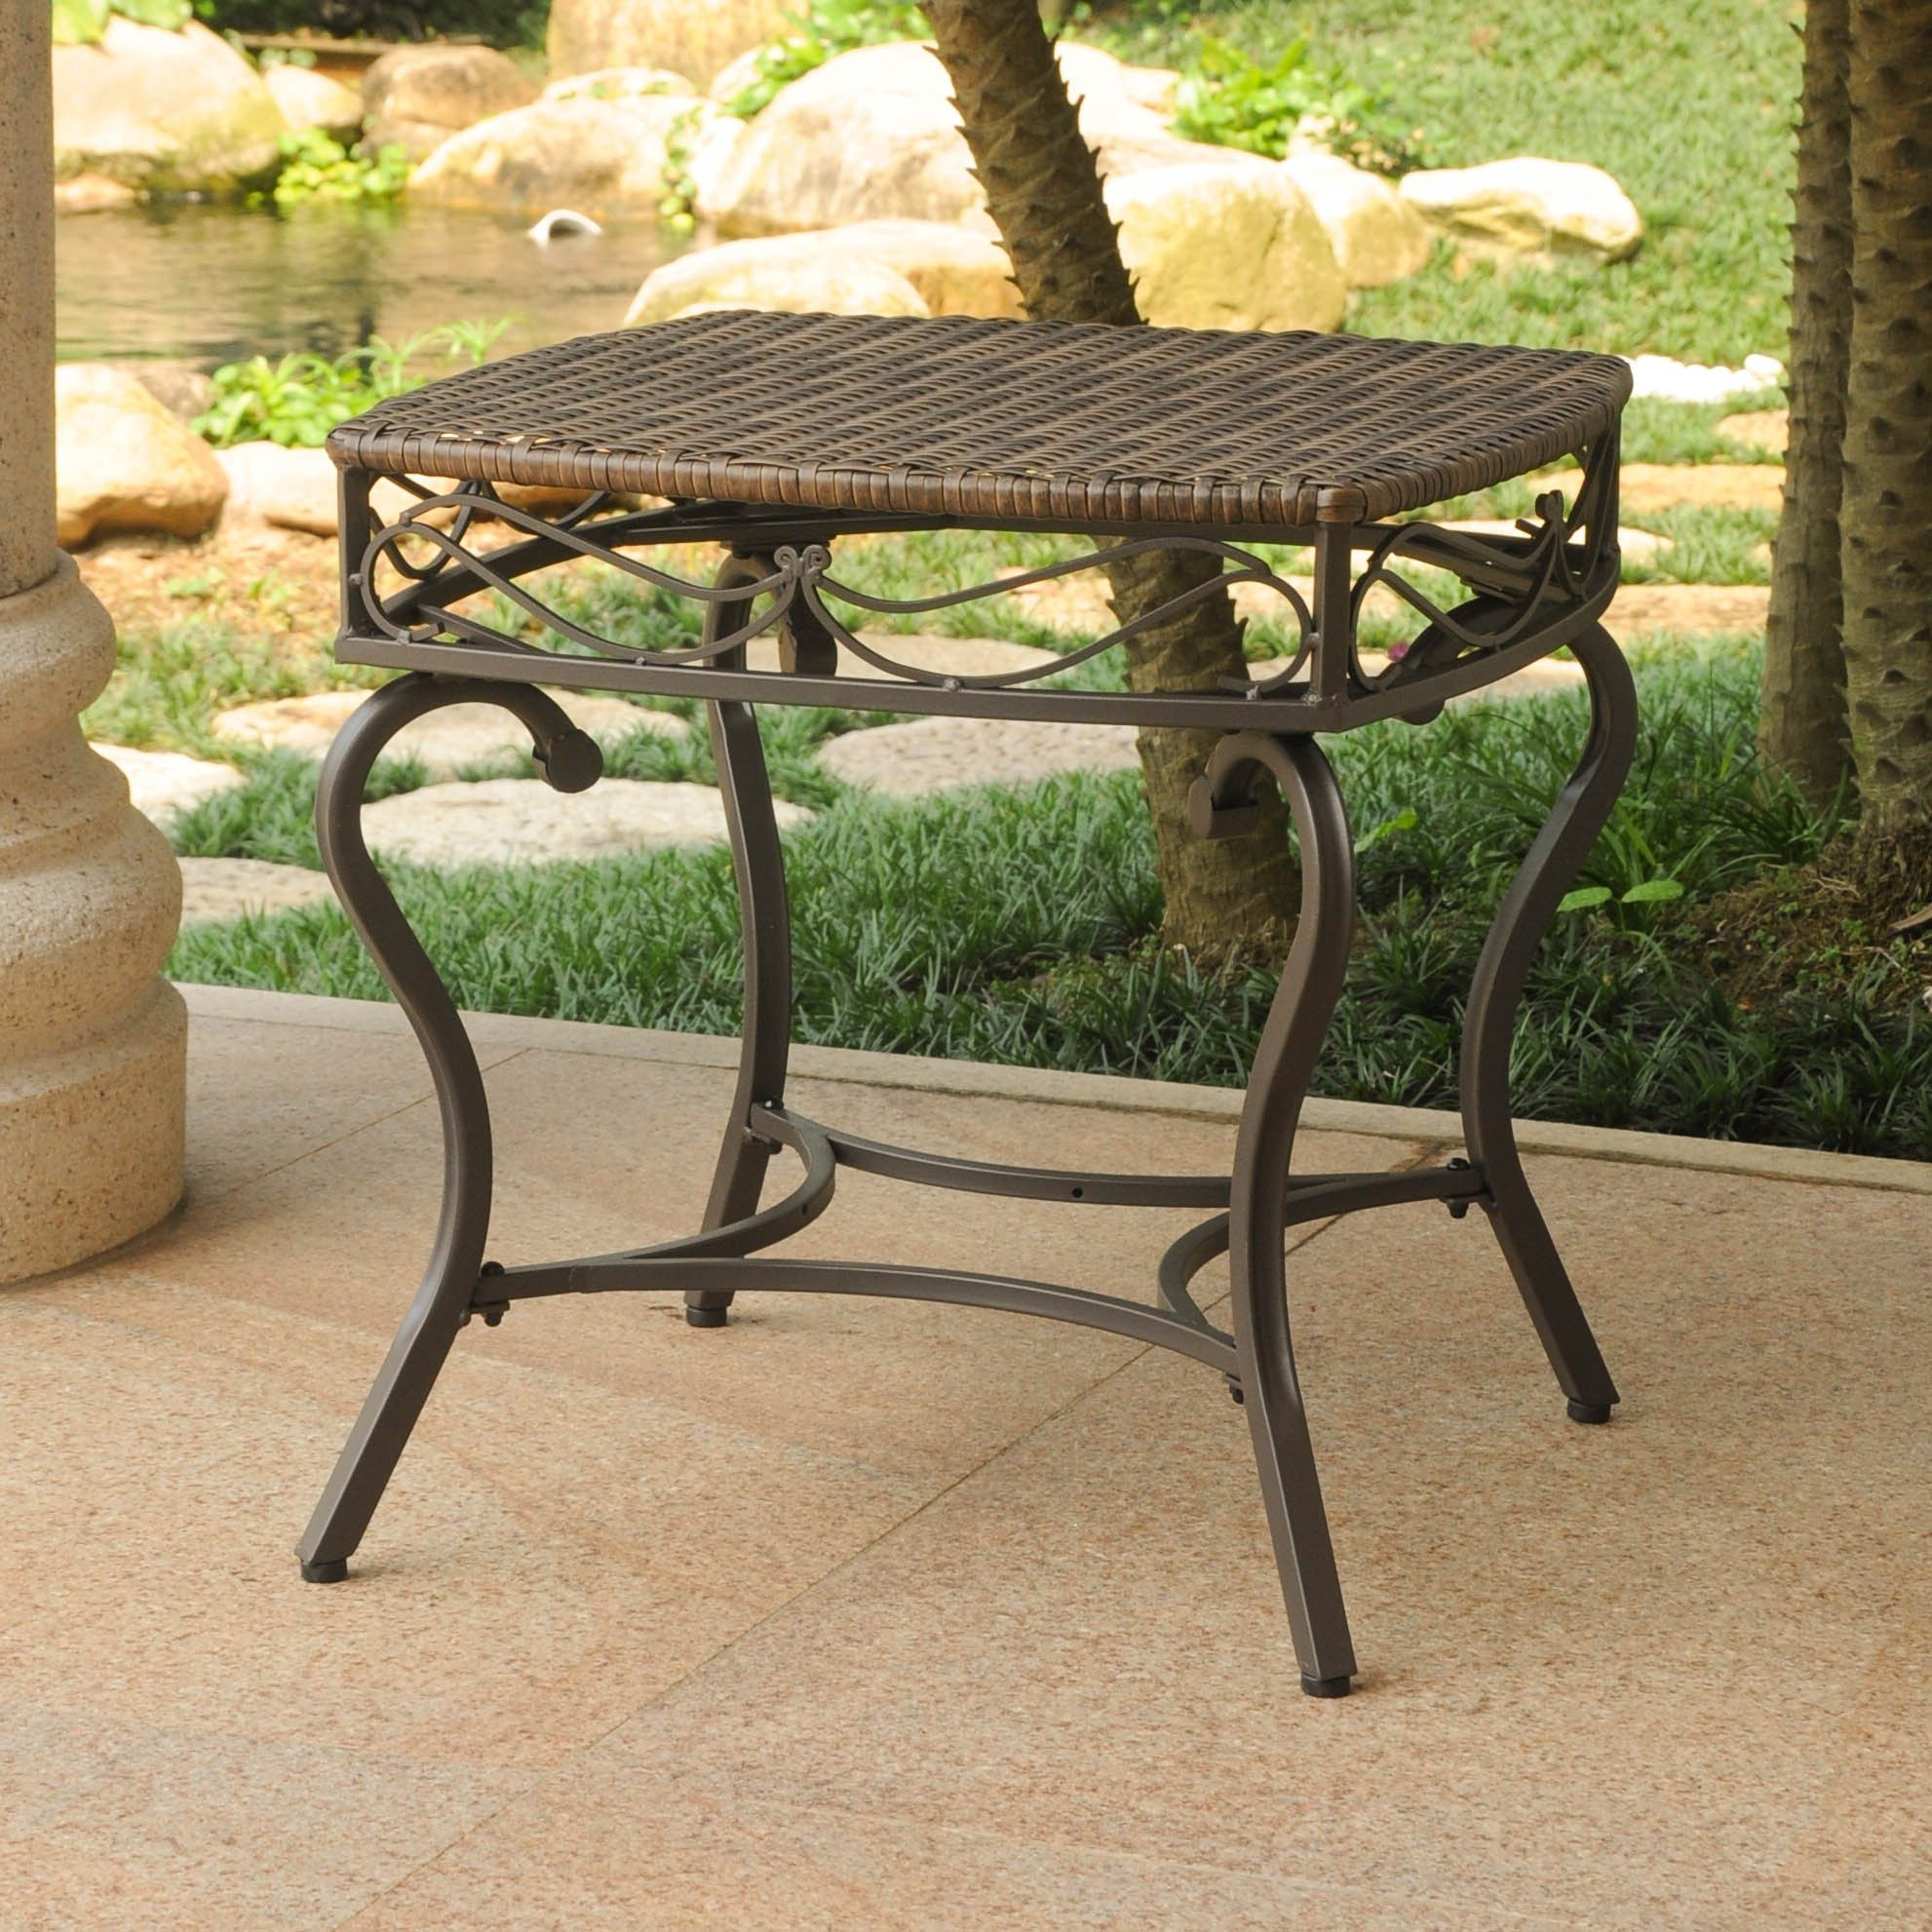 international caravan valencia brown resin wicker outdoor side table free shipping today dorm room furniture gold accent set dining chairs with arms basket drawers marble stone